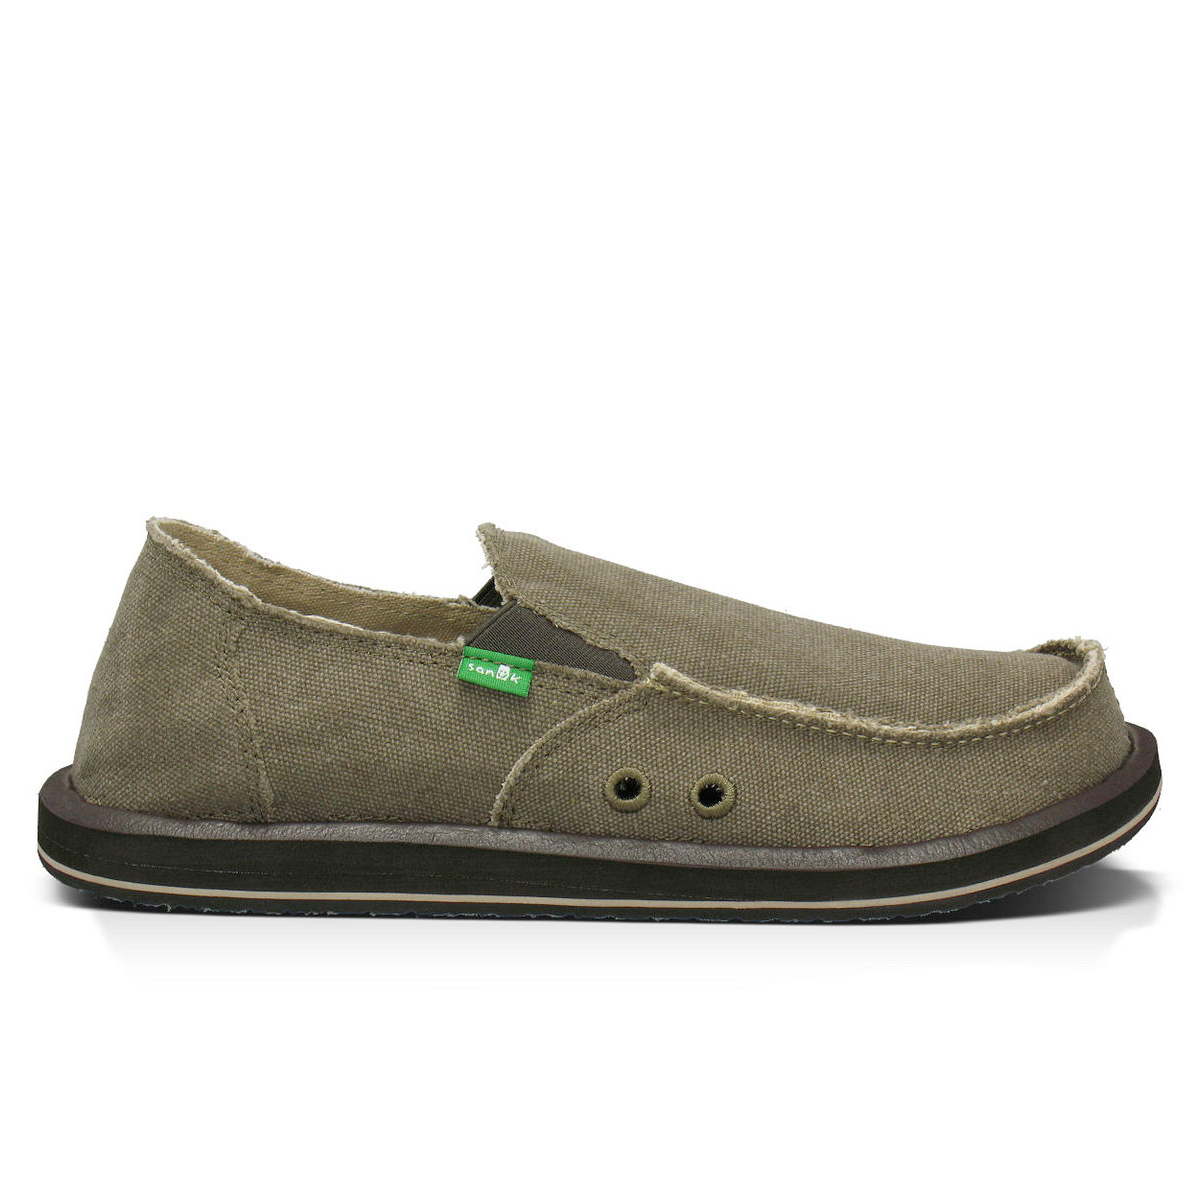 Sanuk Vagabond Sandals Sidewalk Surfers New in Various Colours and Sizes